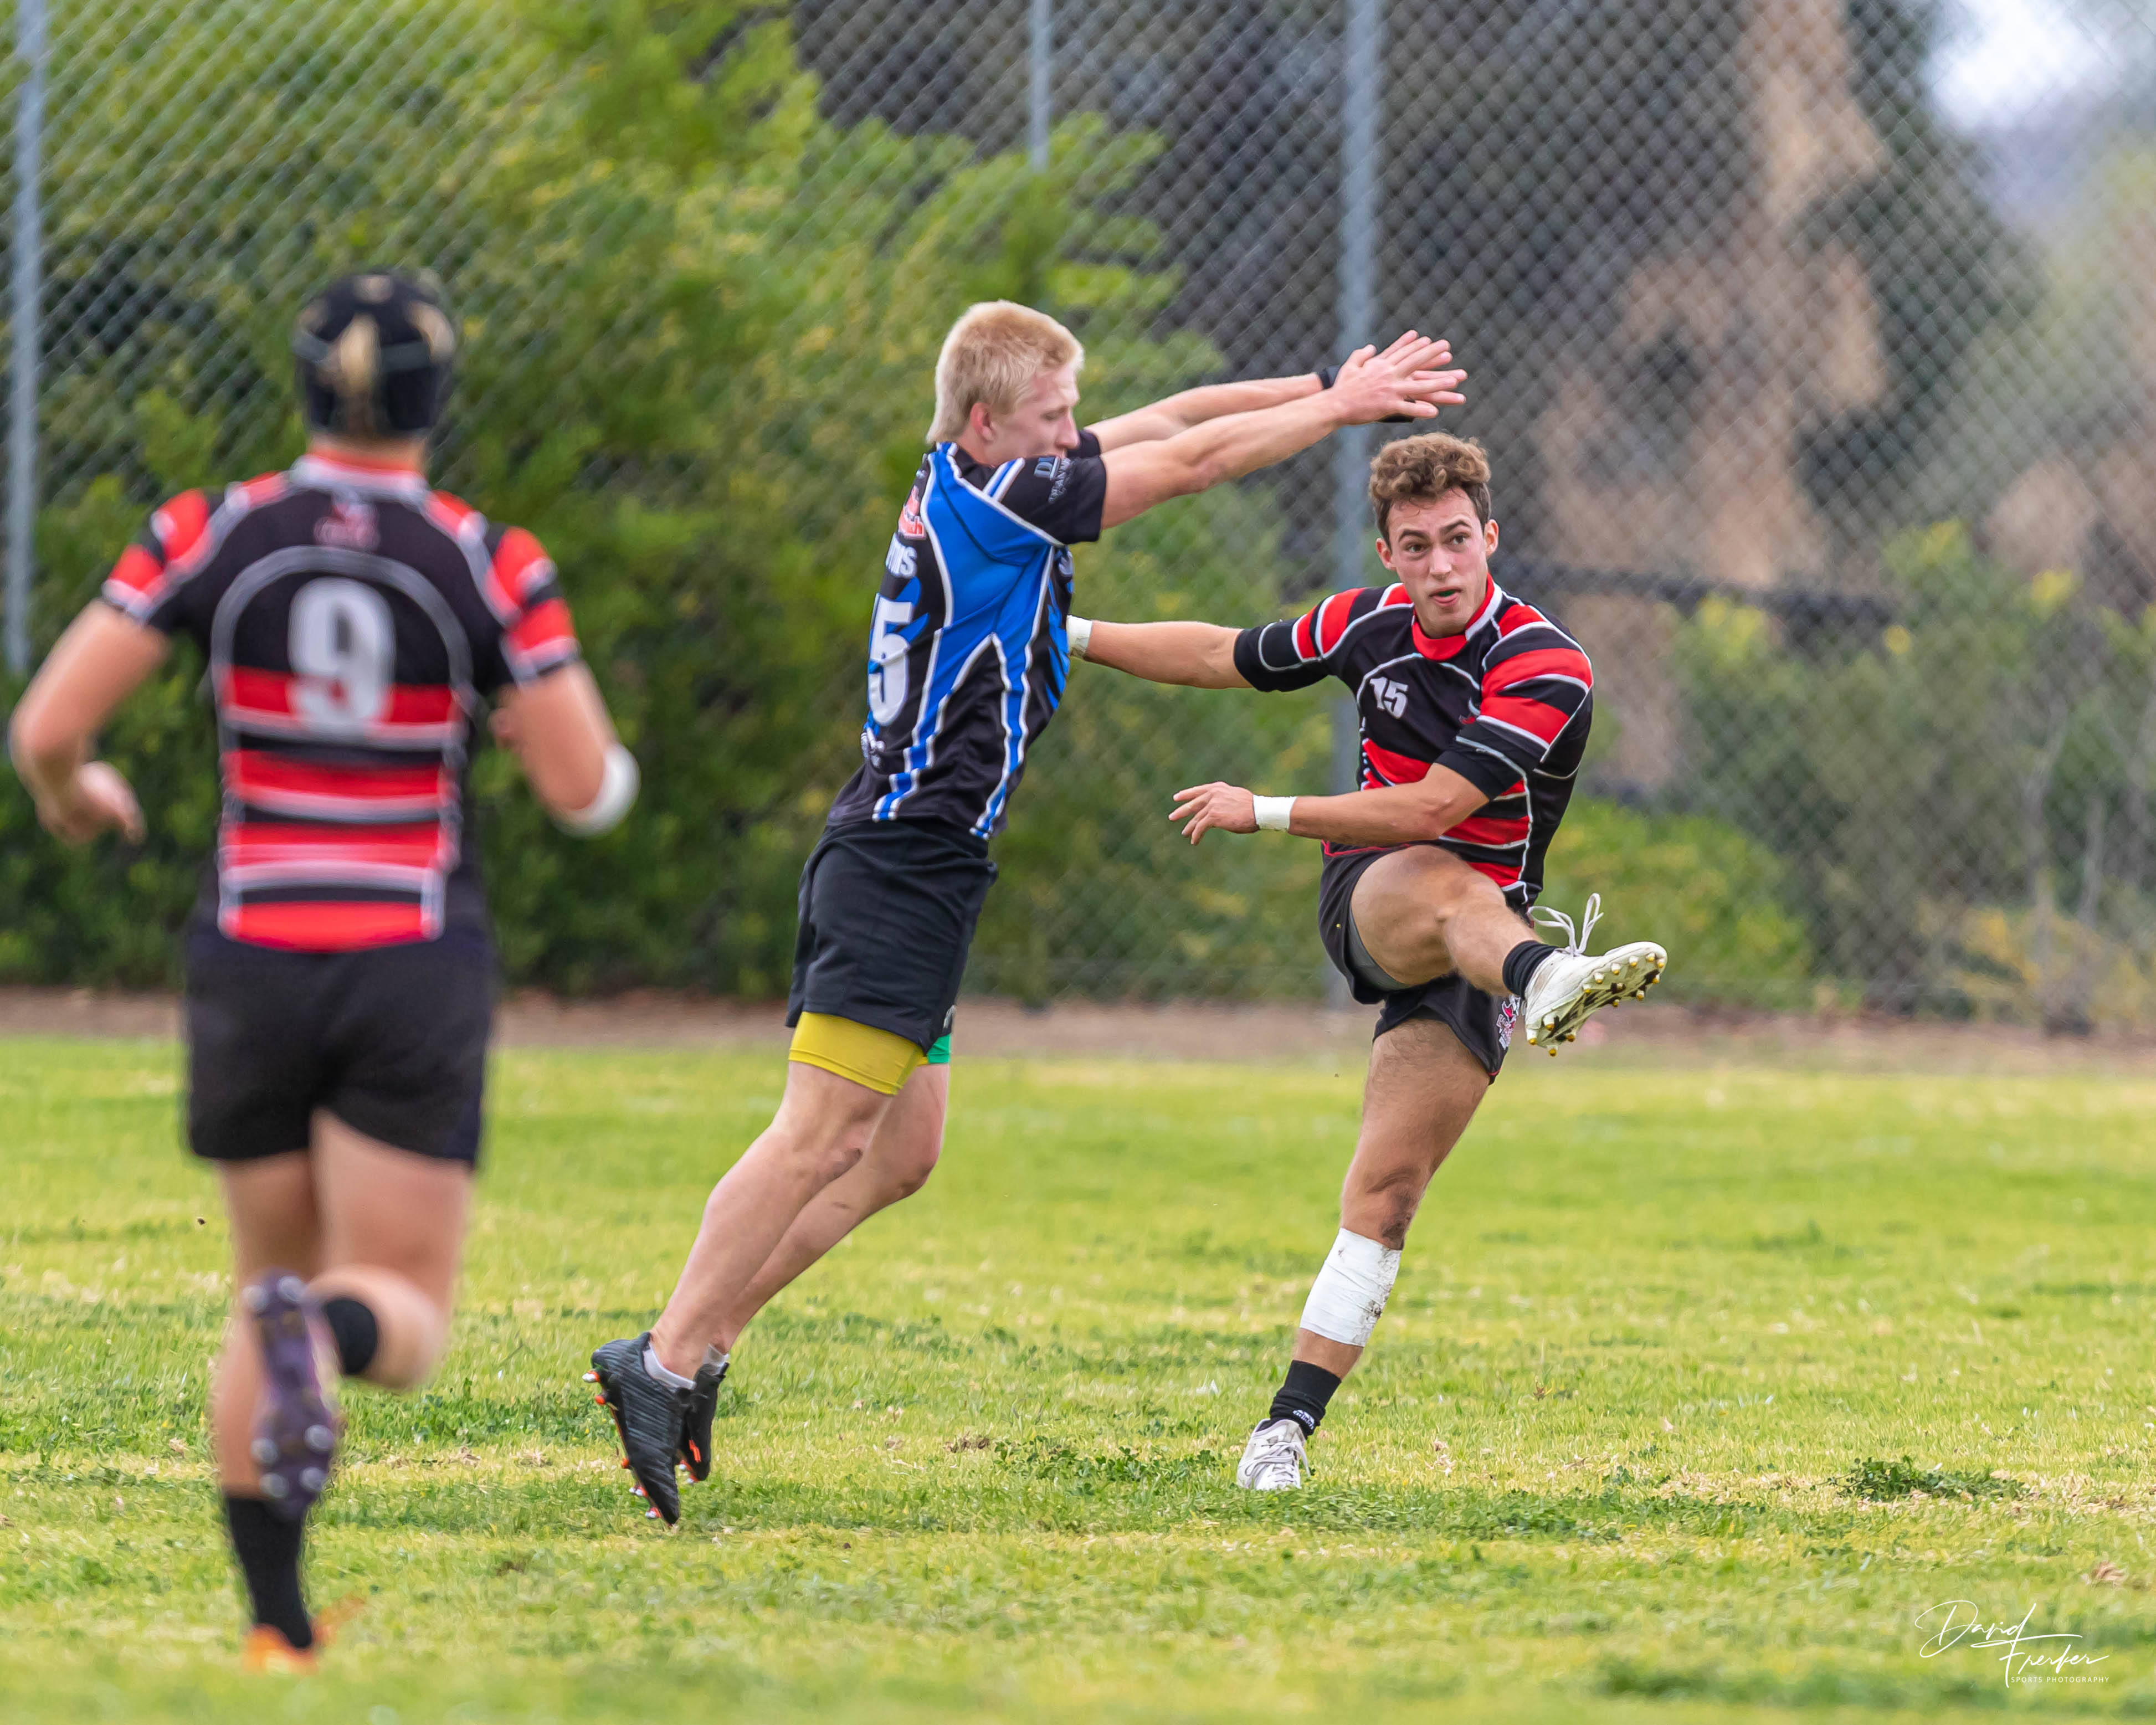 LaJollaRugby28